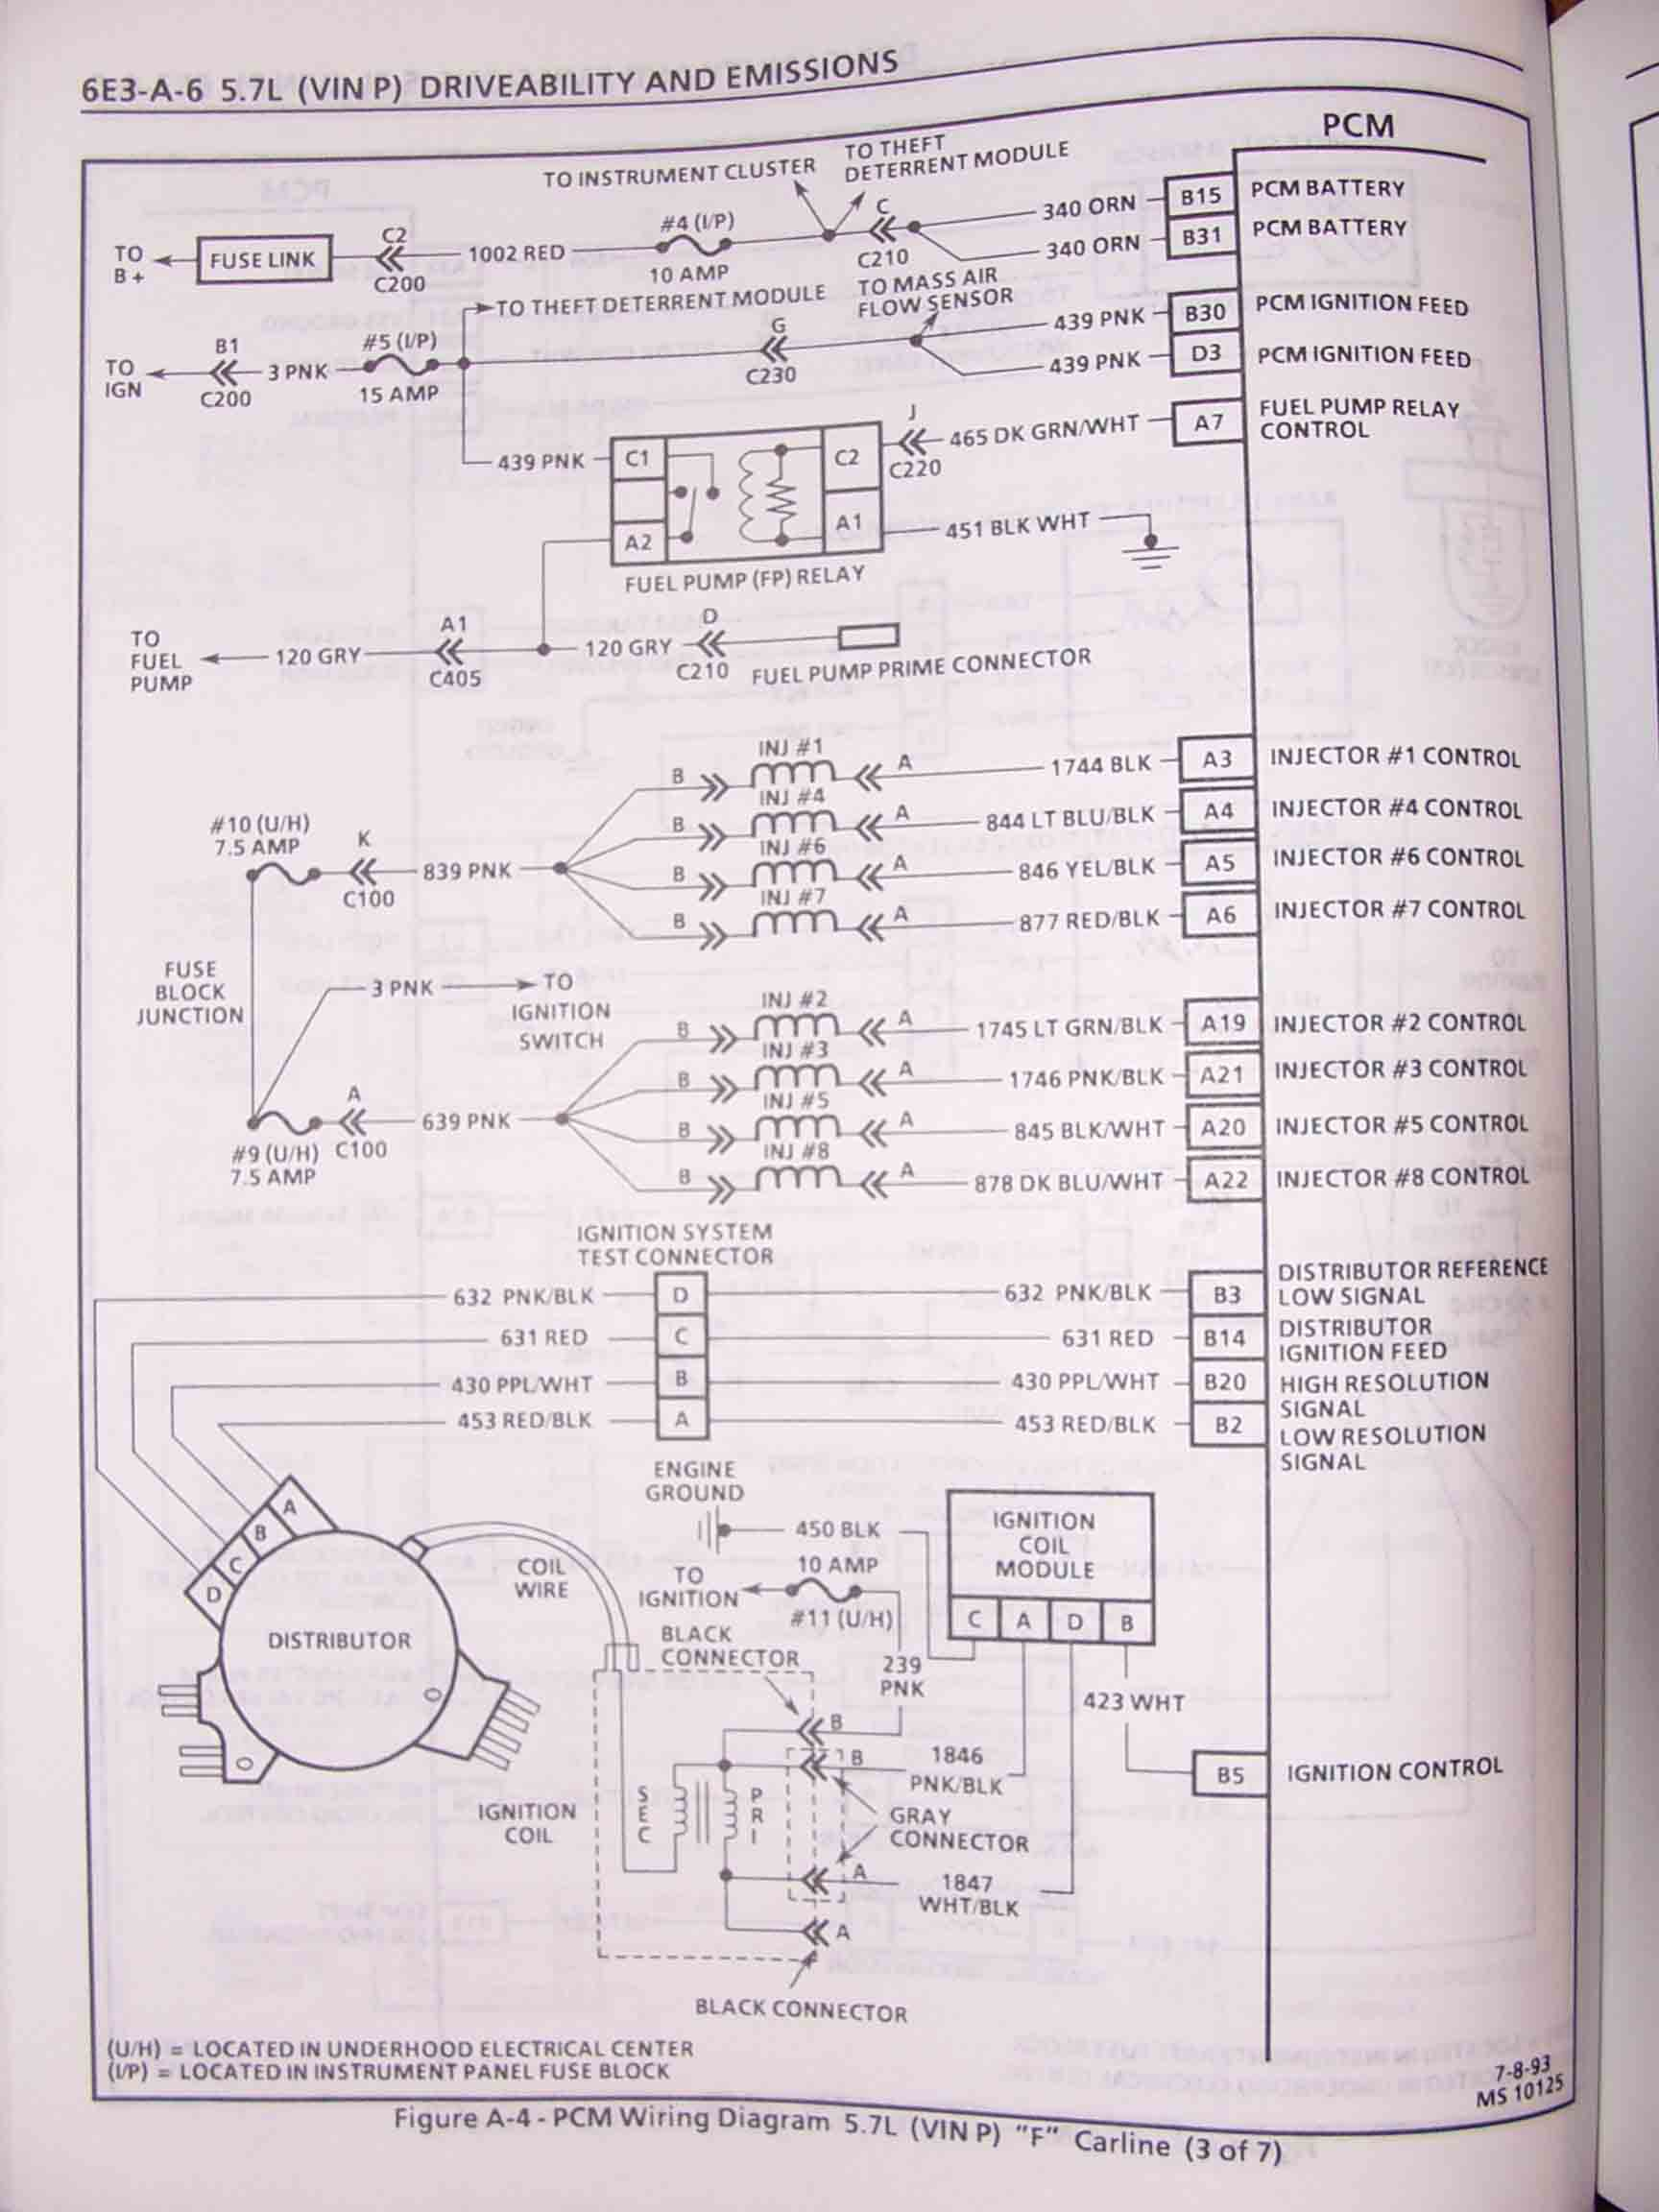 1995 Lt1 Wiring Diagram Vss Circuit Schematic Impala Wheel Speed Sensor Wire Harness F Body Schematics Hall Effect